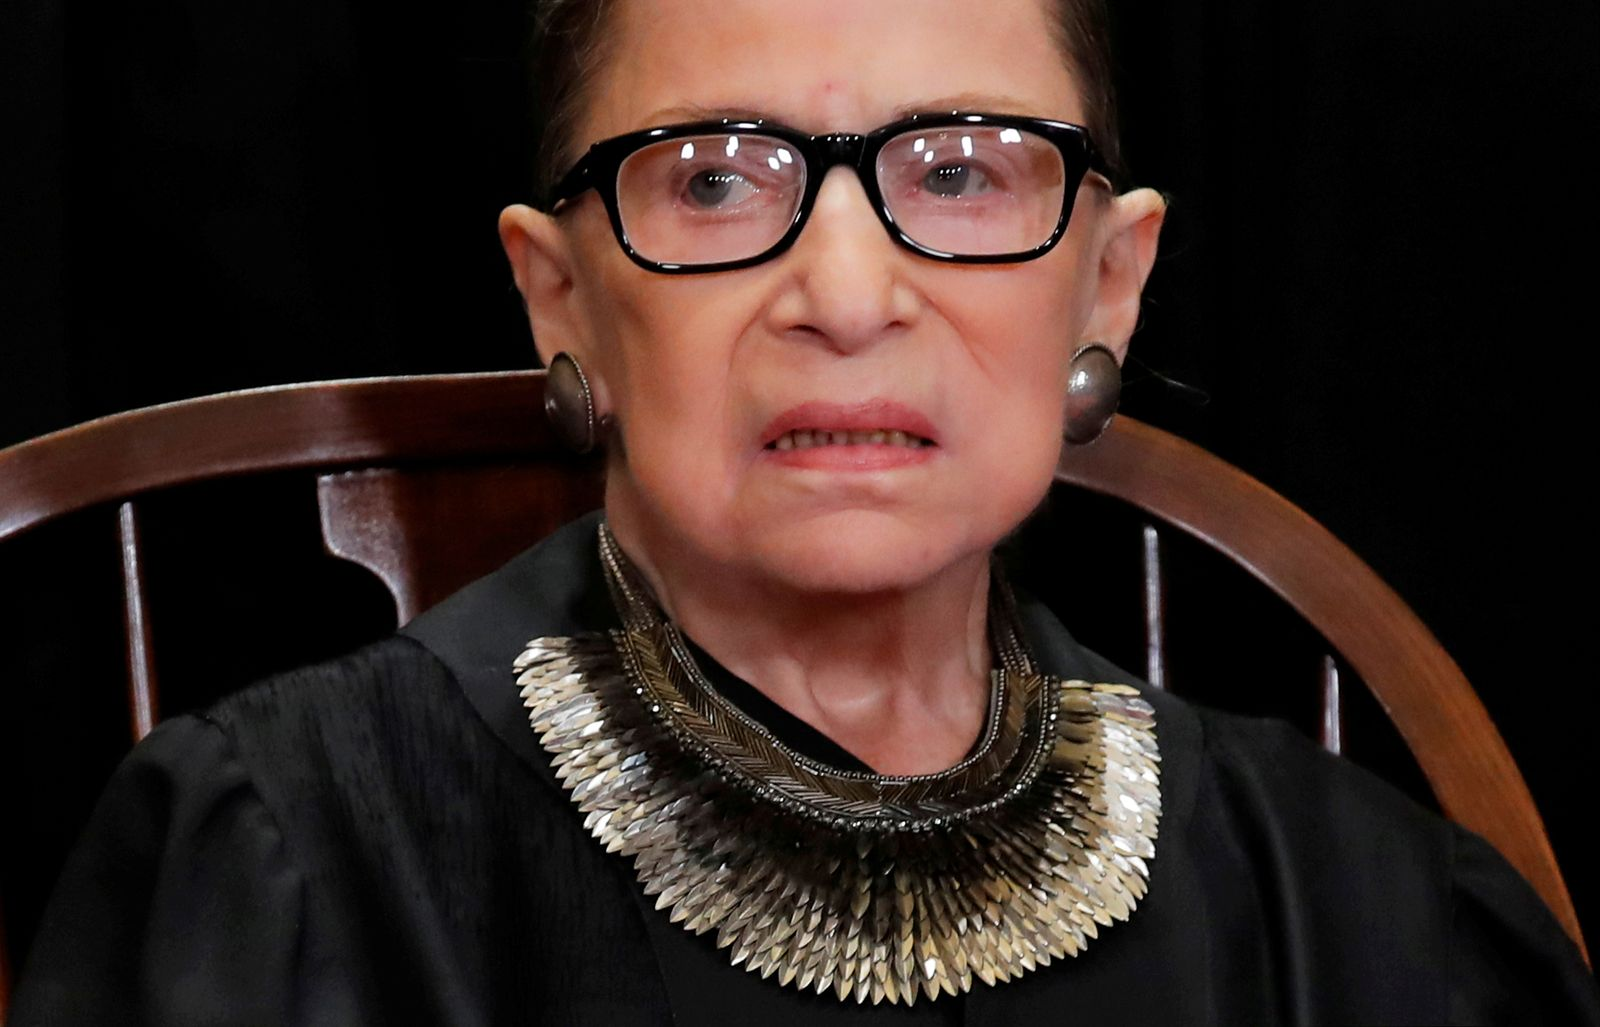 FILE PHOTO: U.S. Supreme Court Justice Ruth Bader Ginsburg poses during group portrait at Supreme Court in Washington